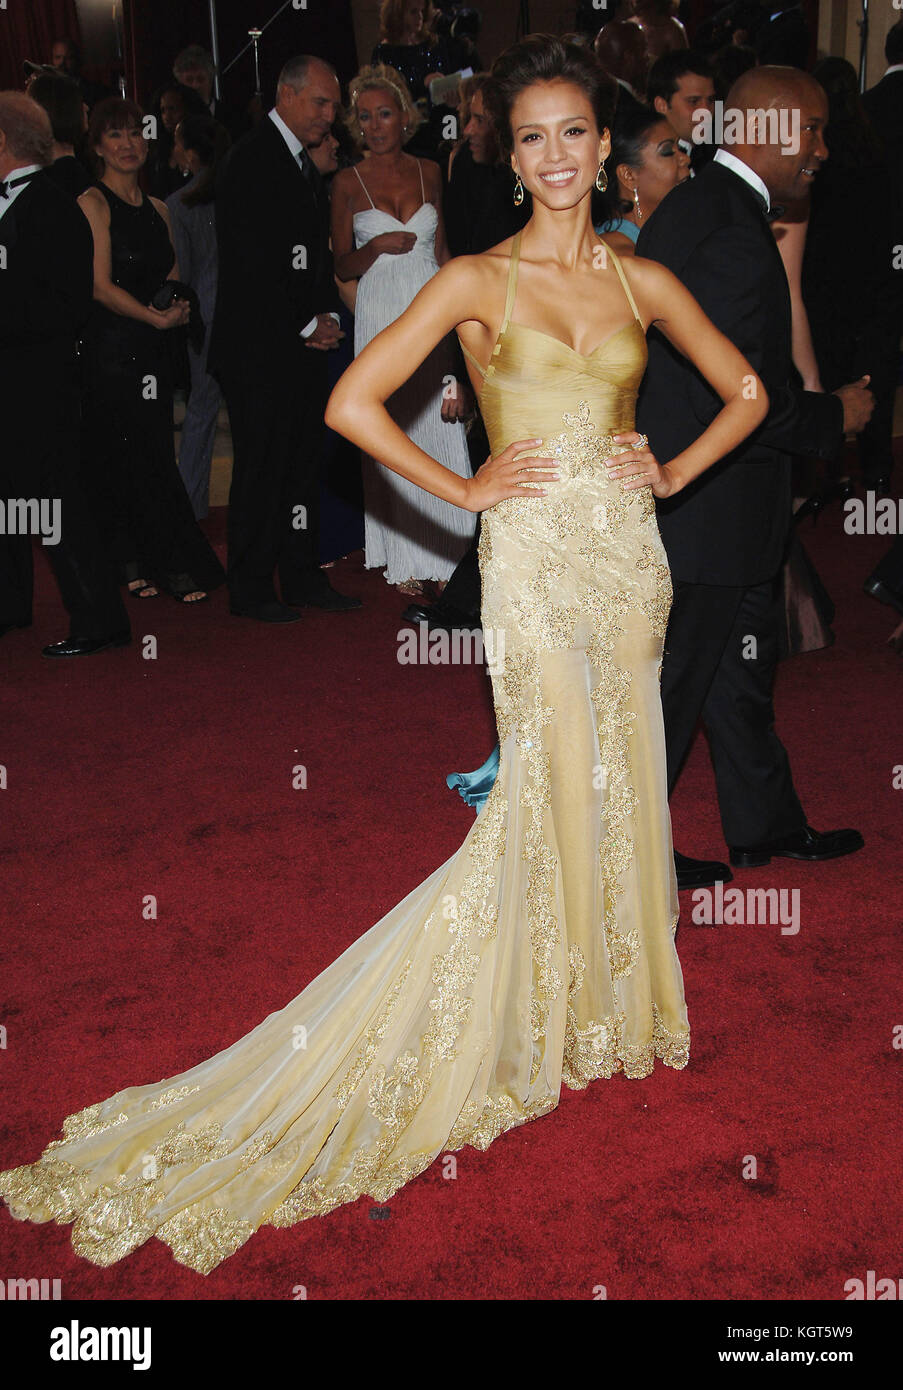 Jessica Alba Arriving At The 78th Annual Academy Awards Kodak Theatre In Hollywood March 5th 2006 568 Fashion Full Length People